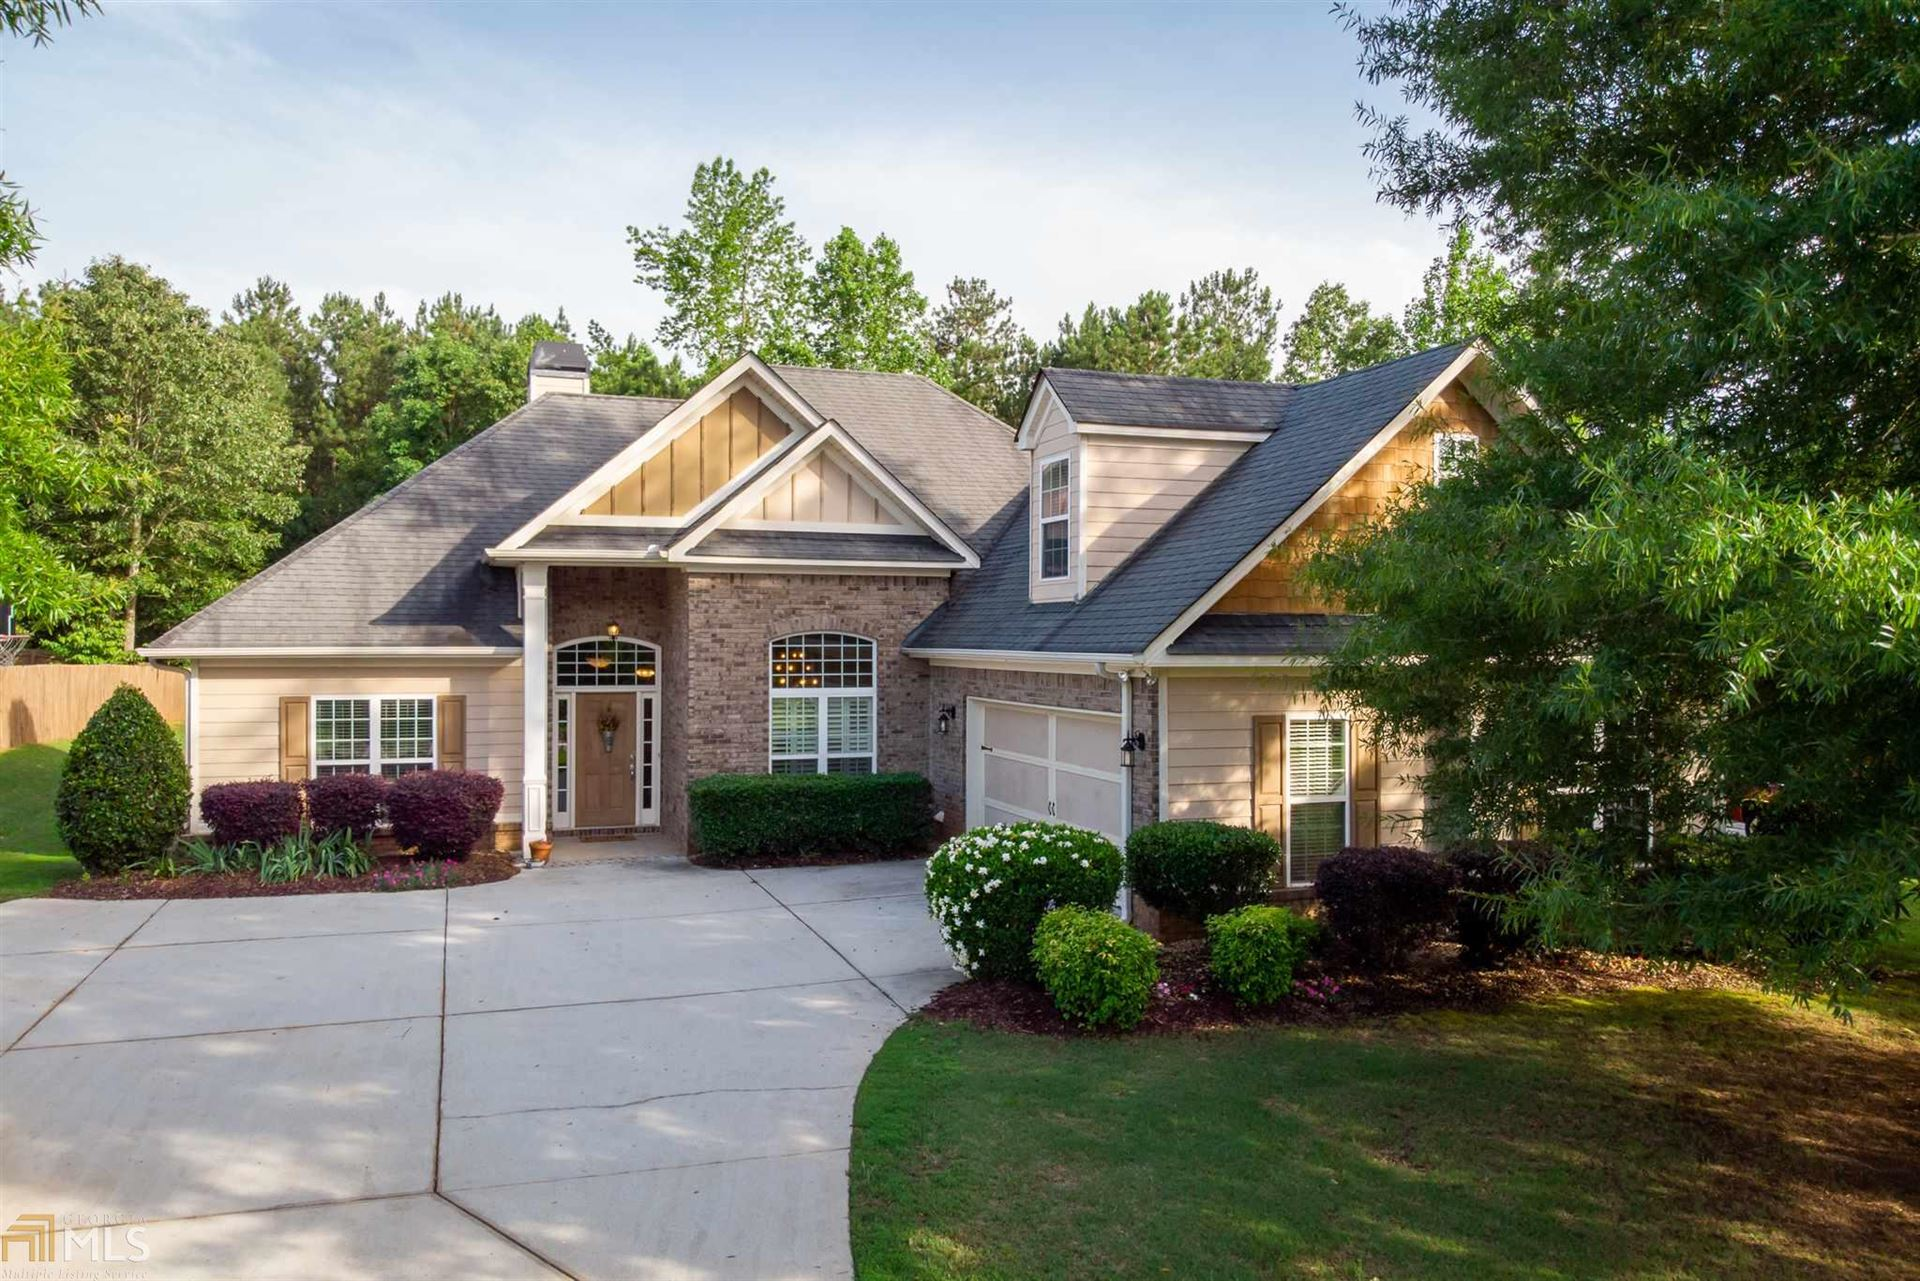 50 Rose Creek Dr, Covington, GA 30014 - #: 8791702